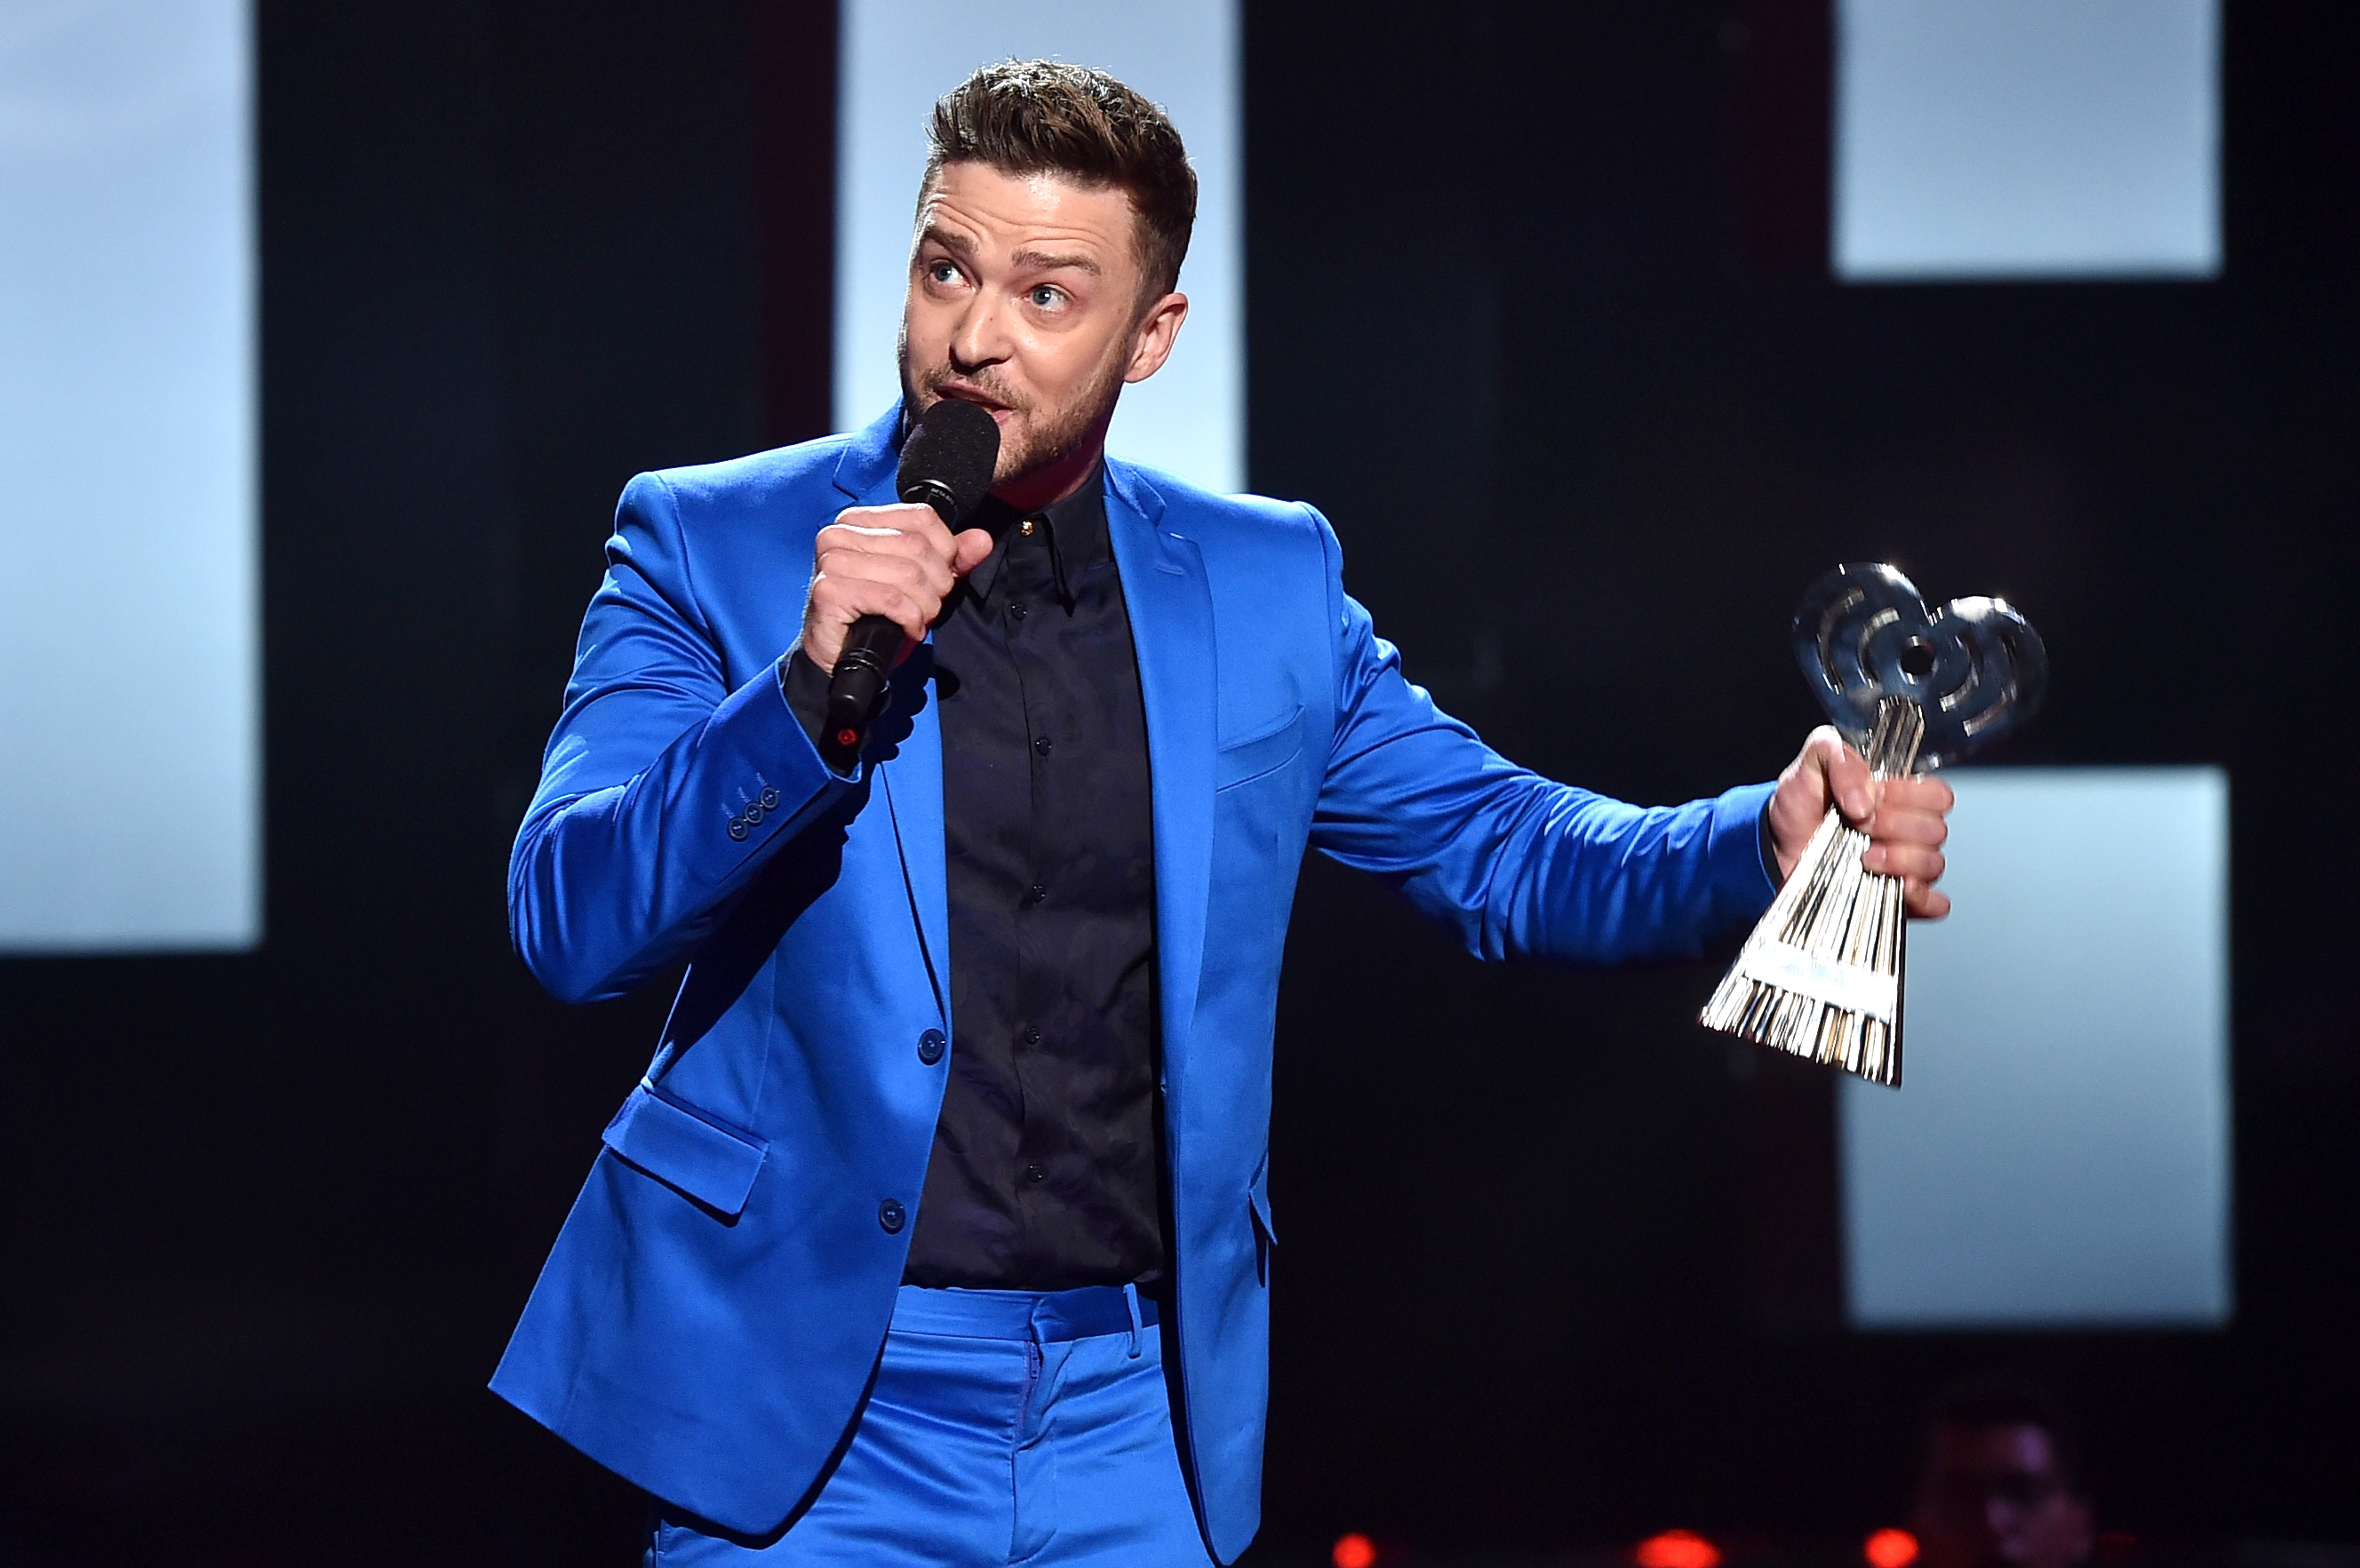 Justin Timberlake accepts the iHeartRadio Innovator Award during the 2015 iHeartRadio Music Awards. (Photo by Kevin Winter/Getty)